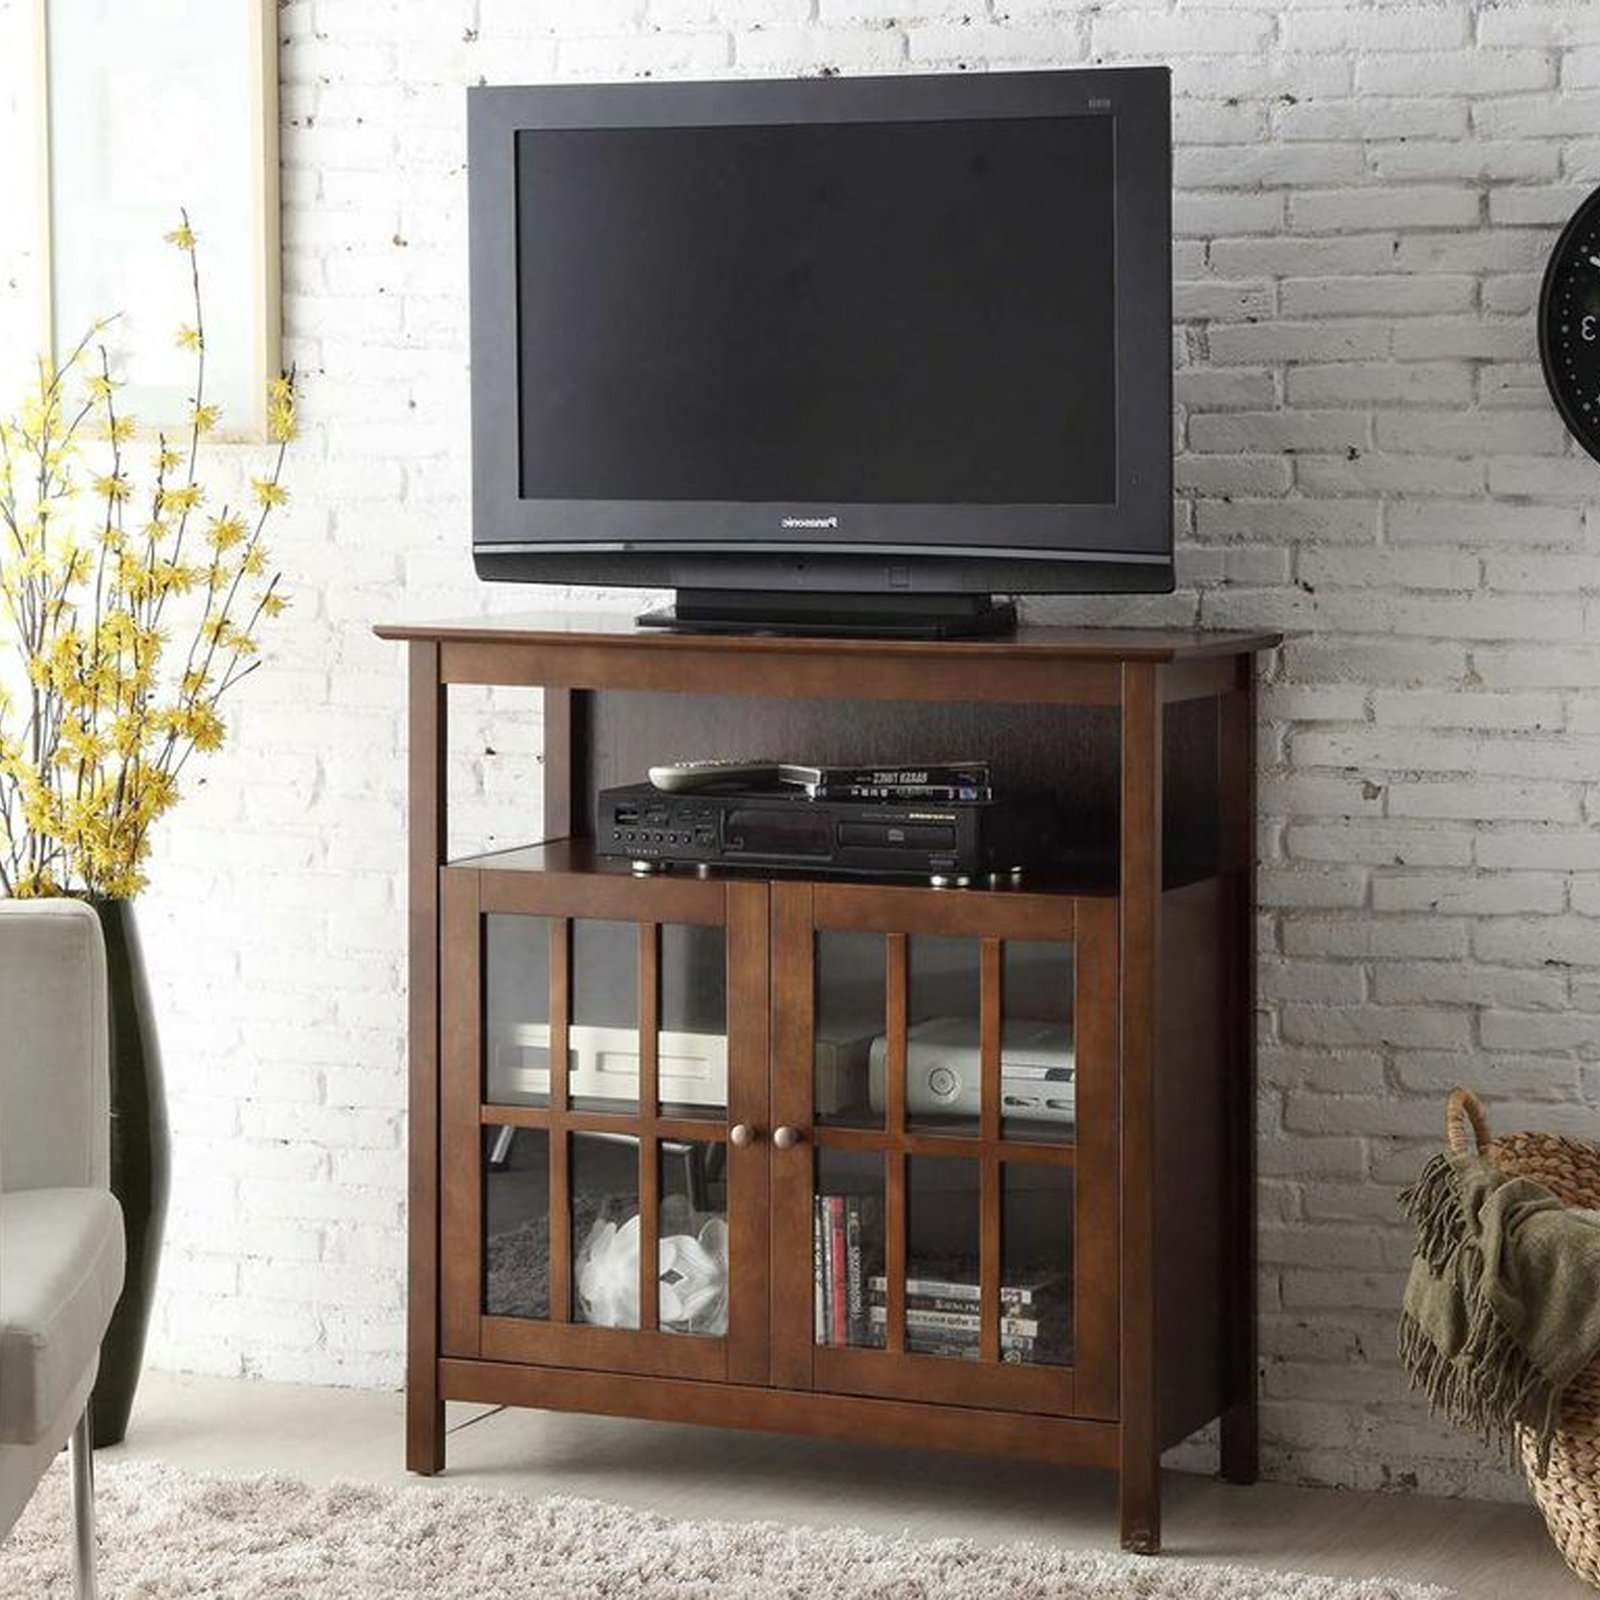 Good Highboy Tv Stands 61 About Remodel Interior Decor Home With Throughout 61 Inch Tv Stands (Gallery 13 of 15)